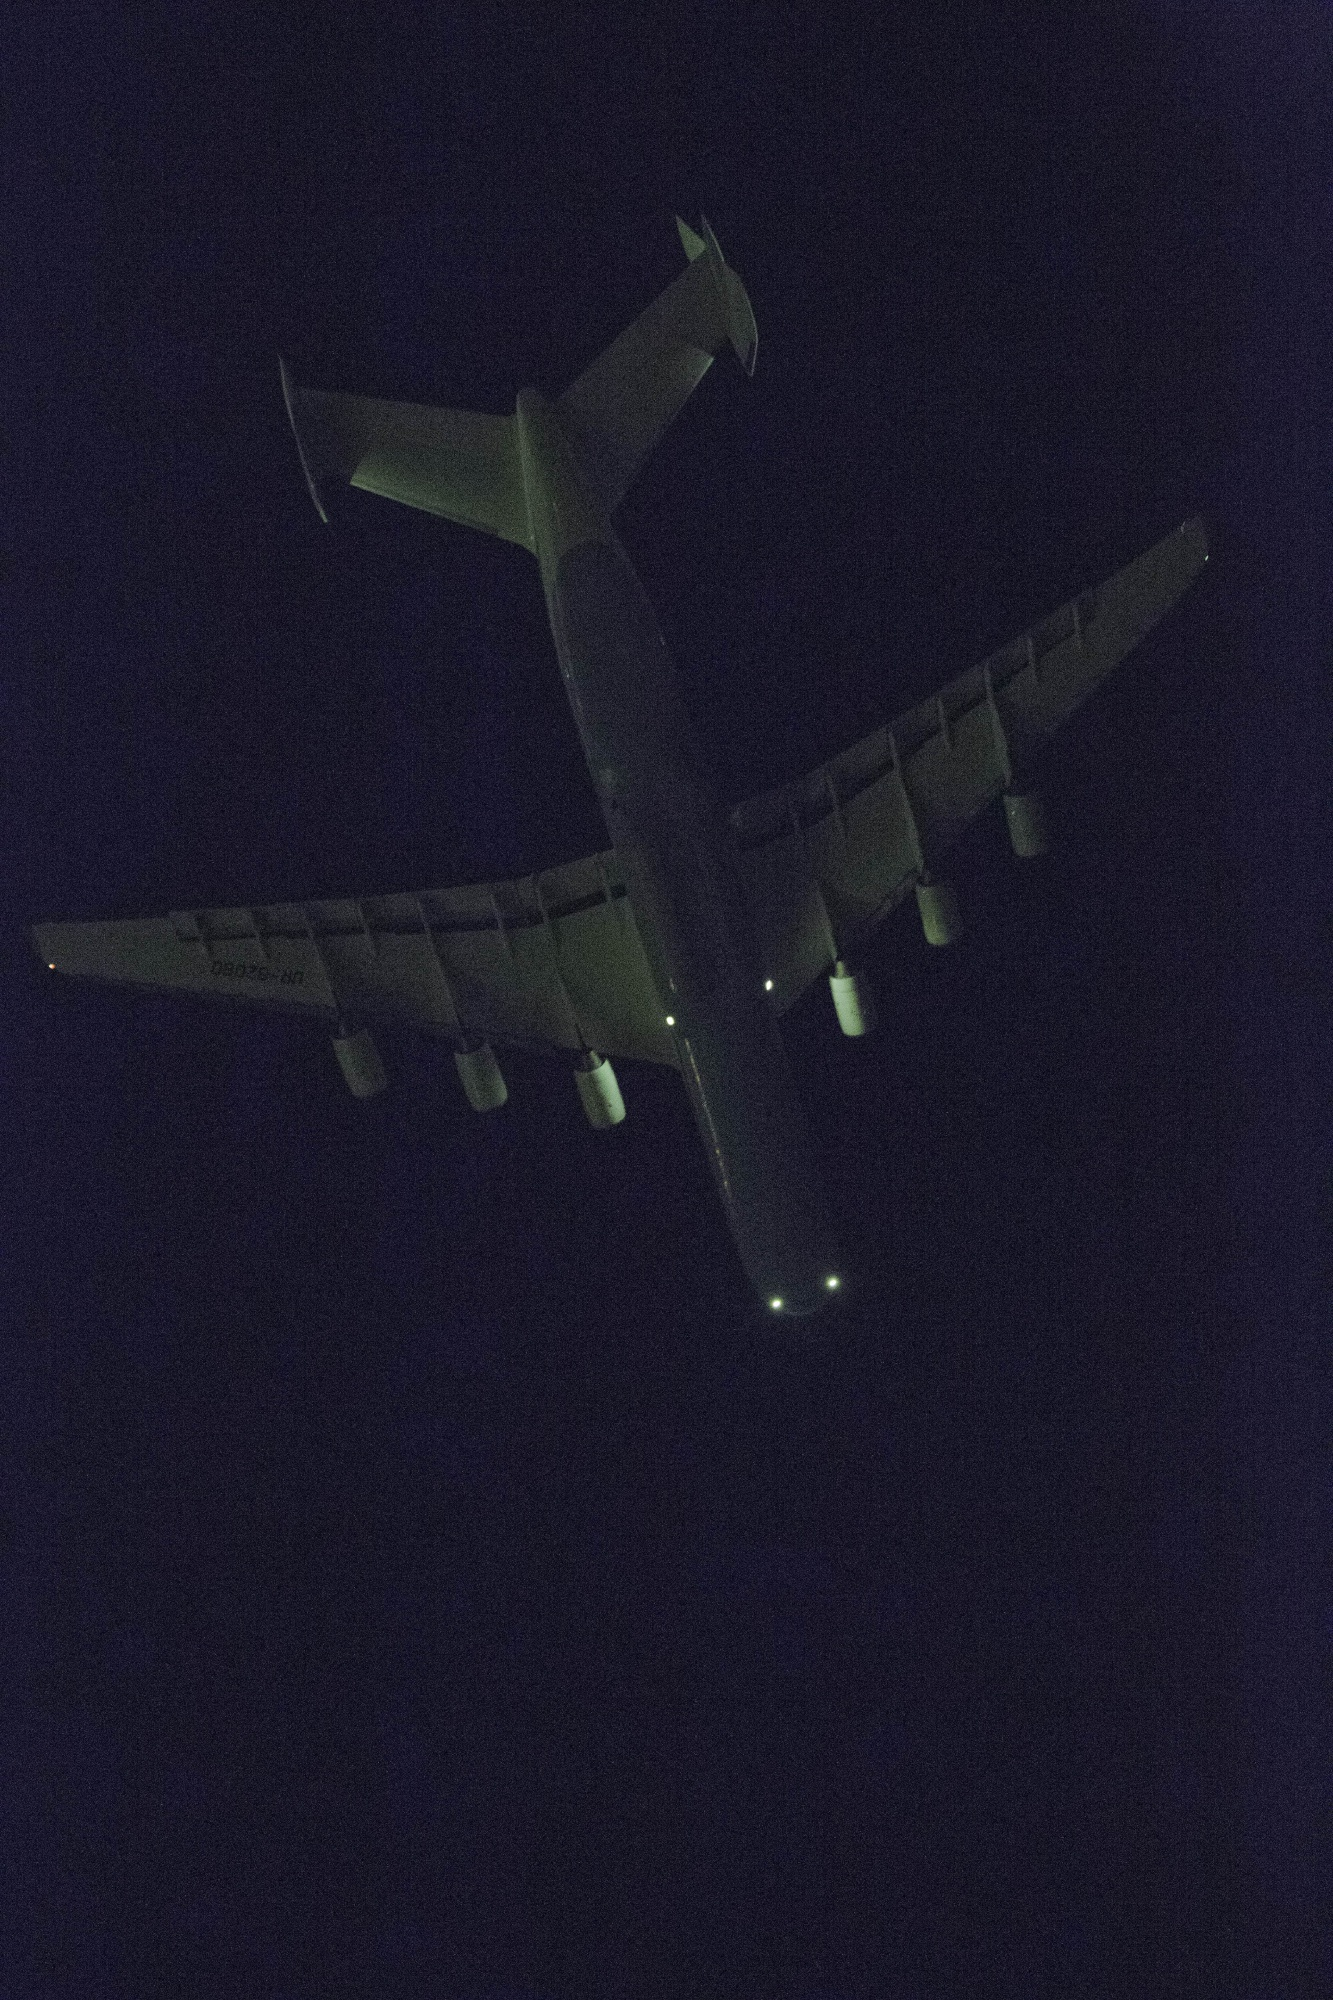 The Antonov An-225 flying high after leaving Perth early this morning. Picture: Bharathan Kangatheran